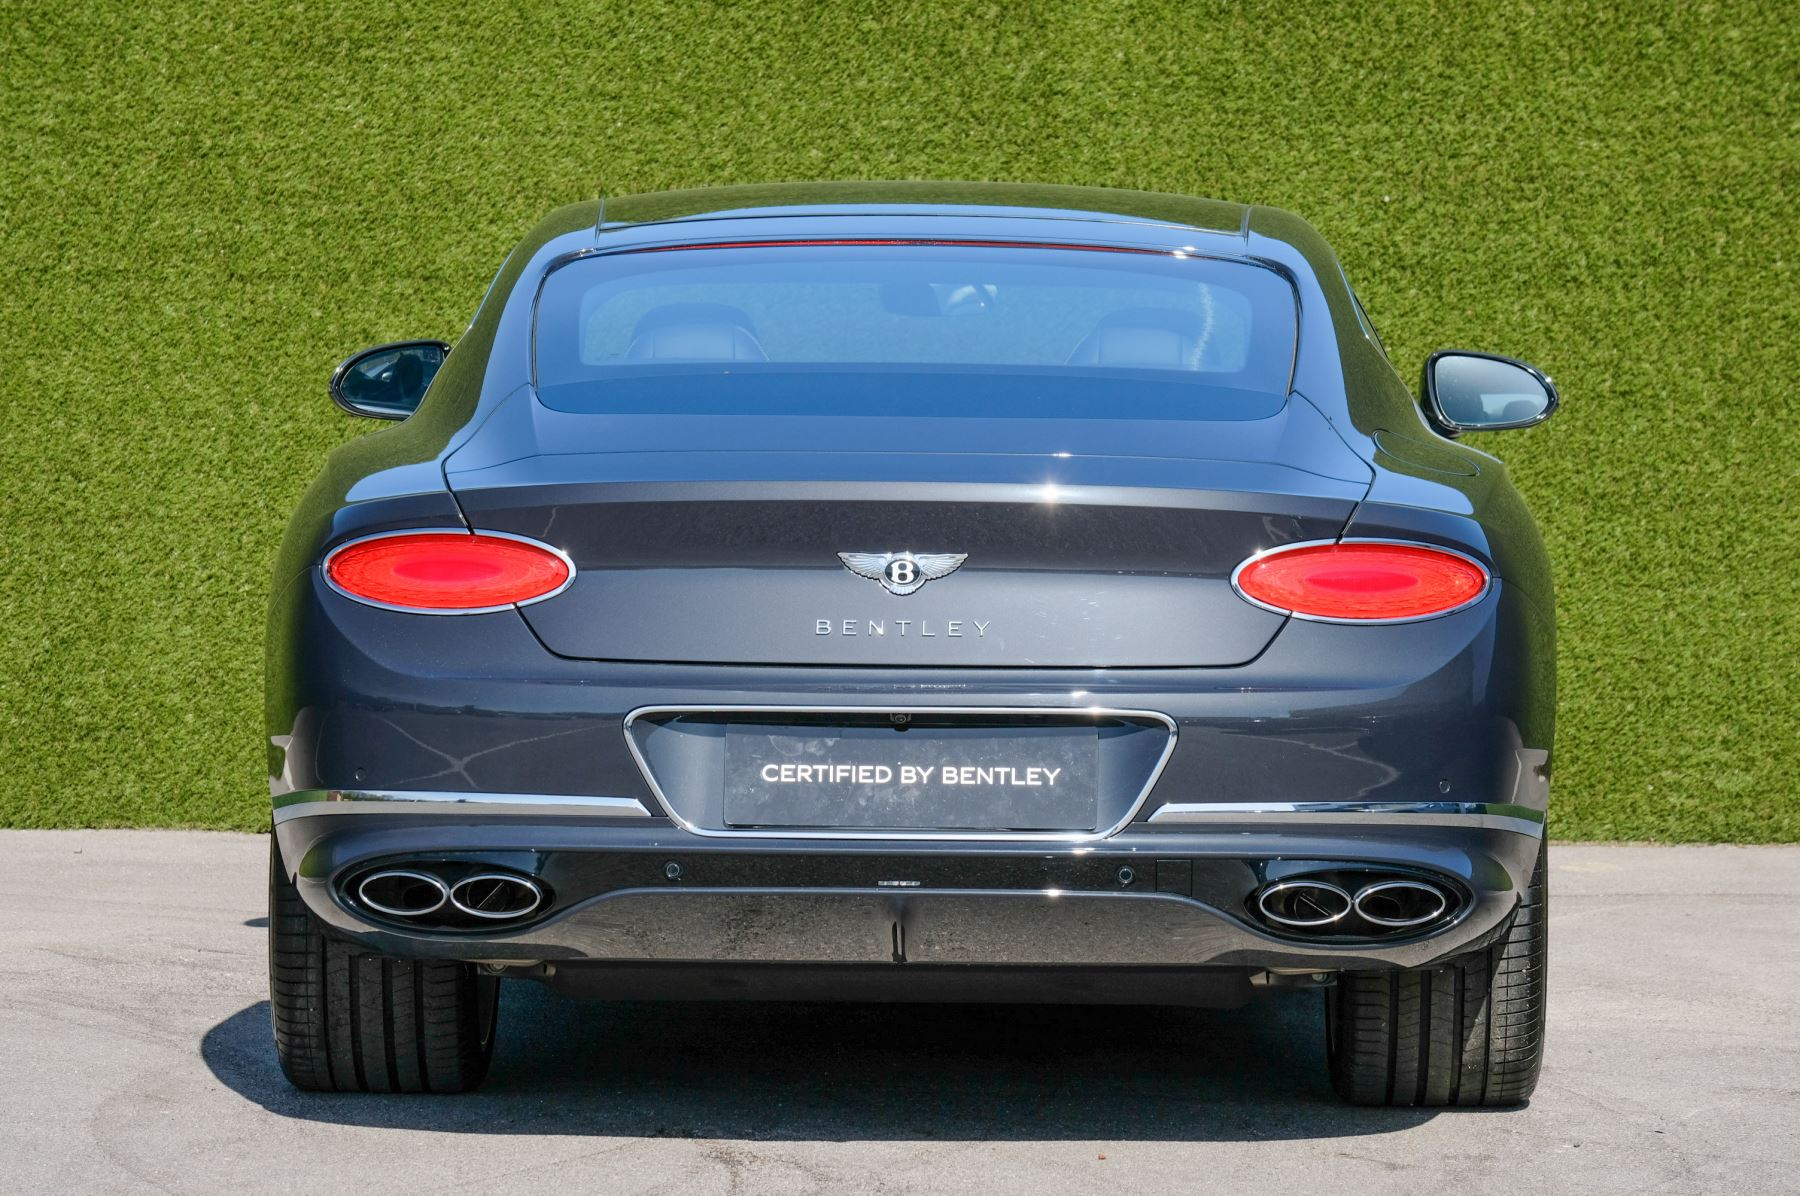 Bentley Continental GT 4.0 V8 Mulliner Edition 2dr Auto - City Specification - Panoramic Glass Roof image 4